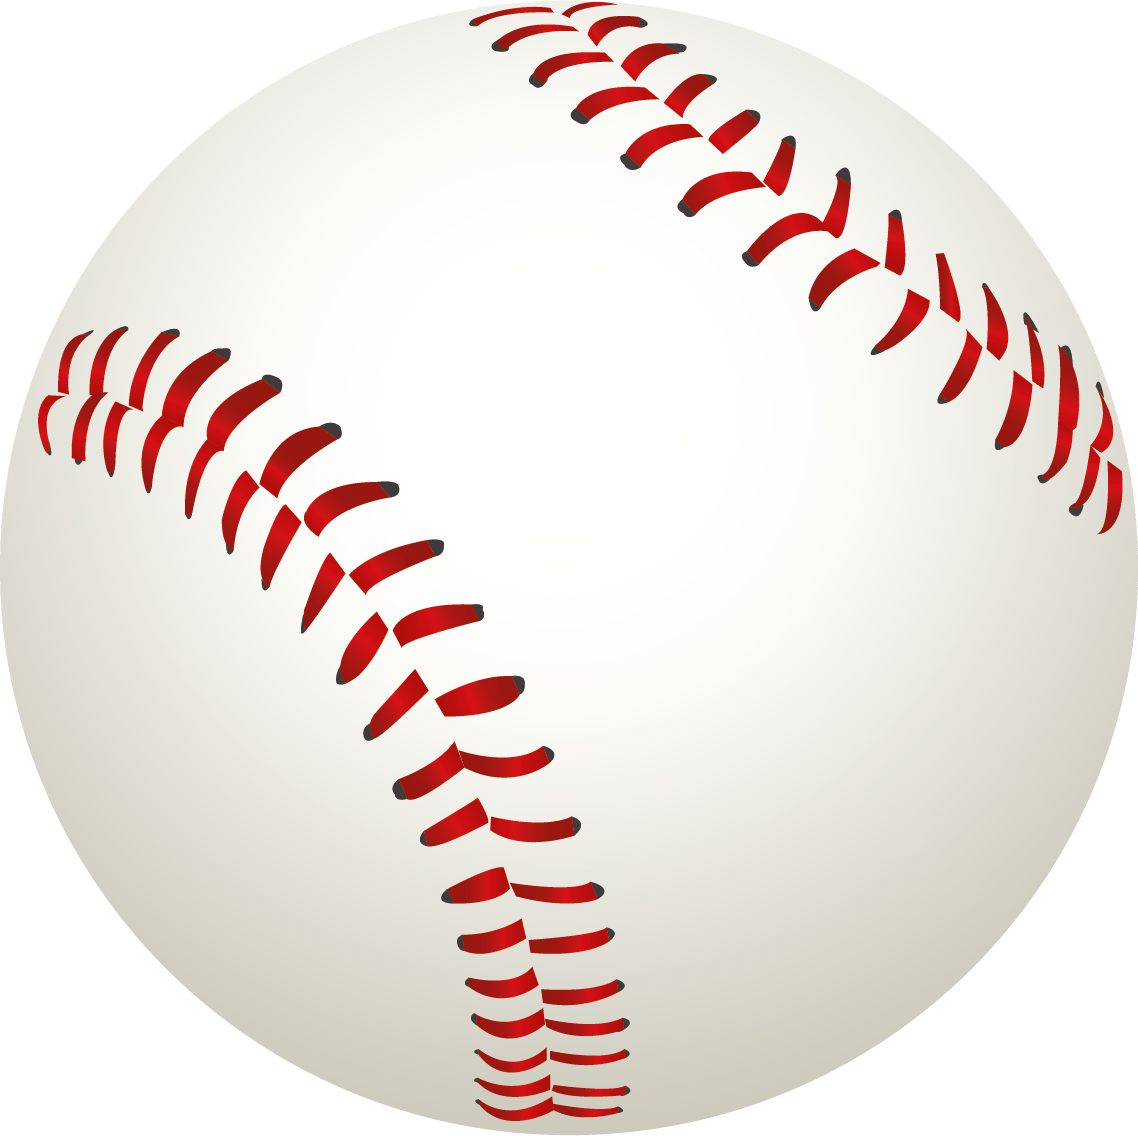 hight resolution of free baseball clipart free clip art images image 7 2